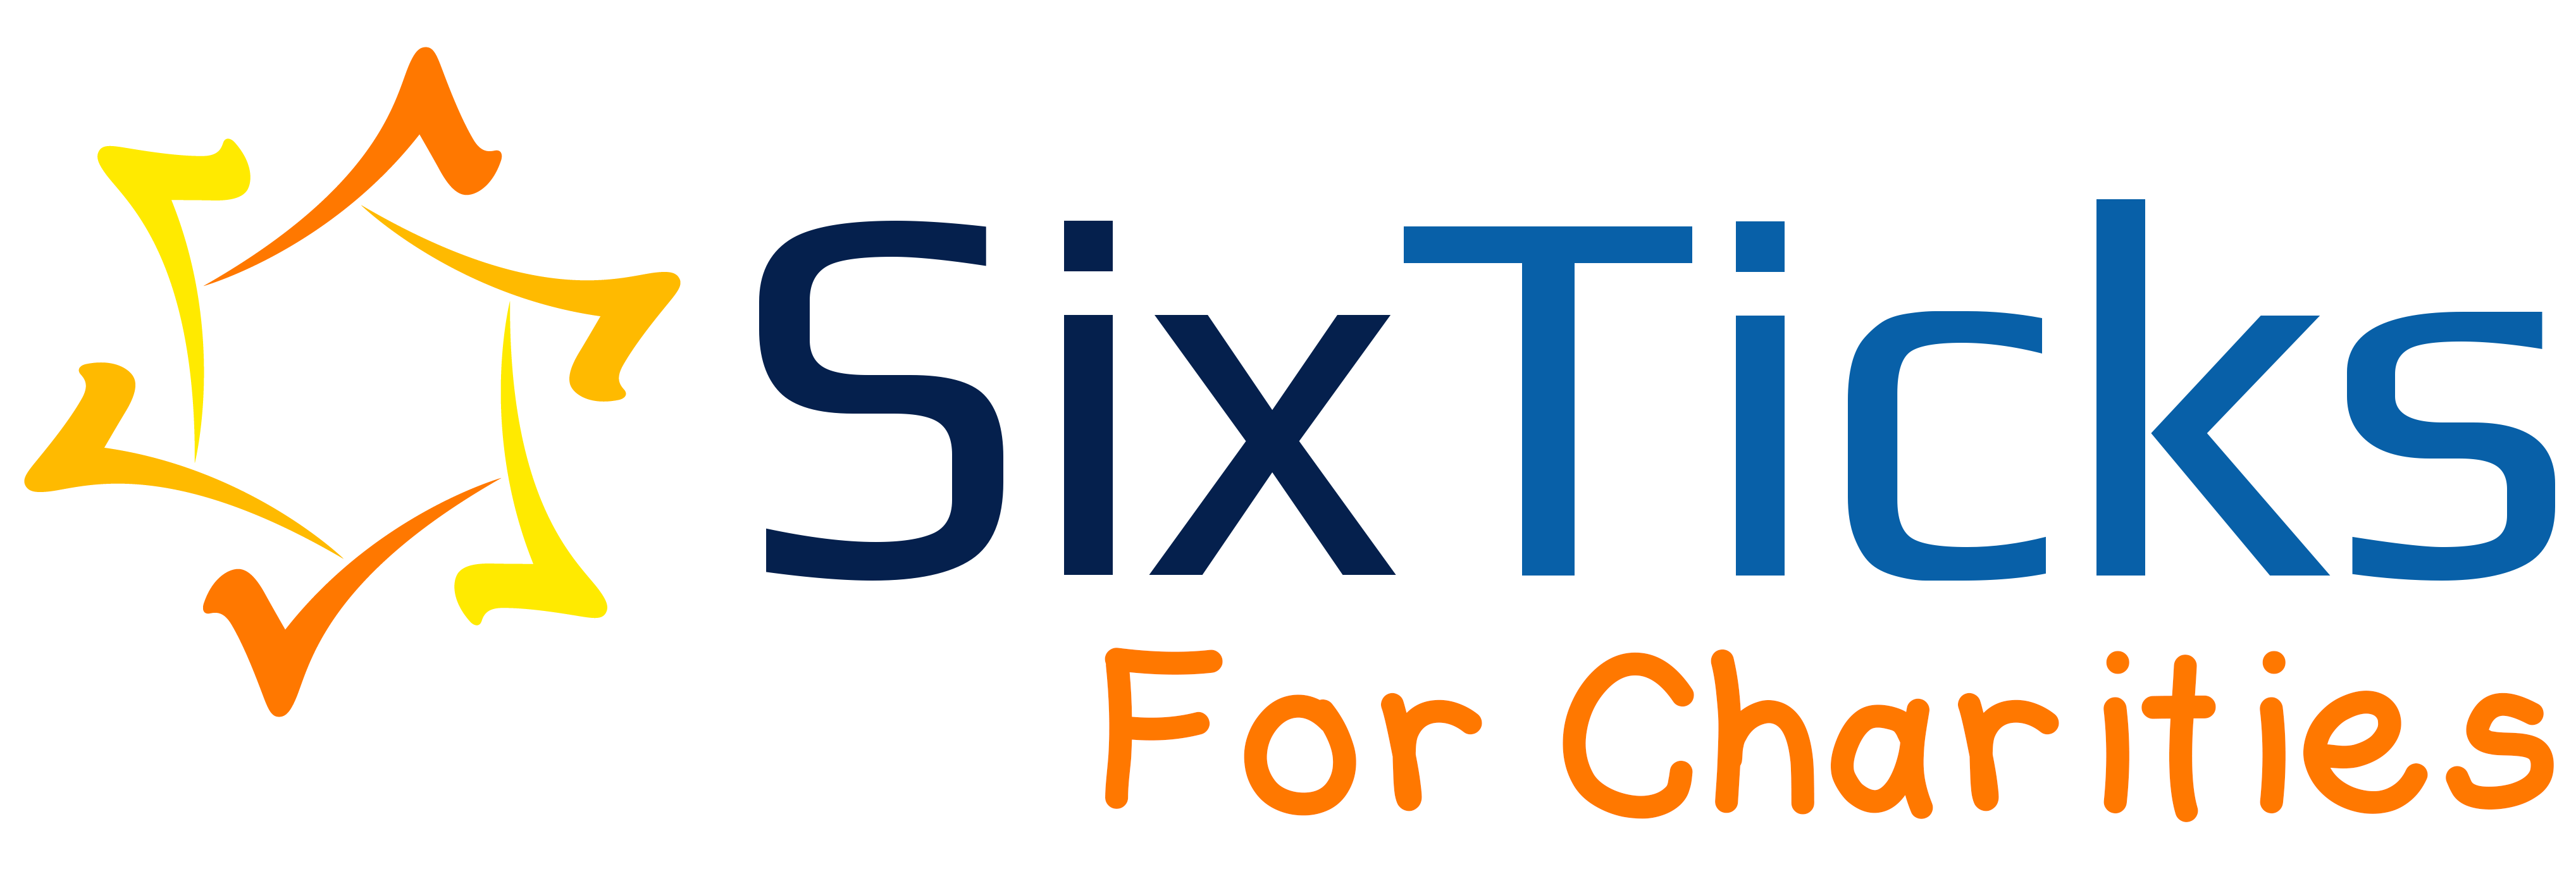 Six Ticks Charity Logo